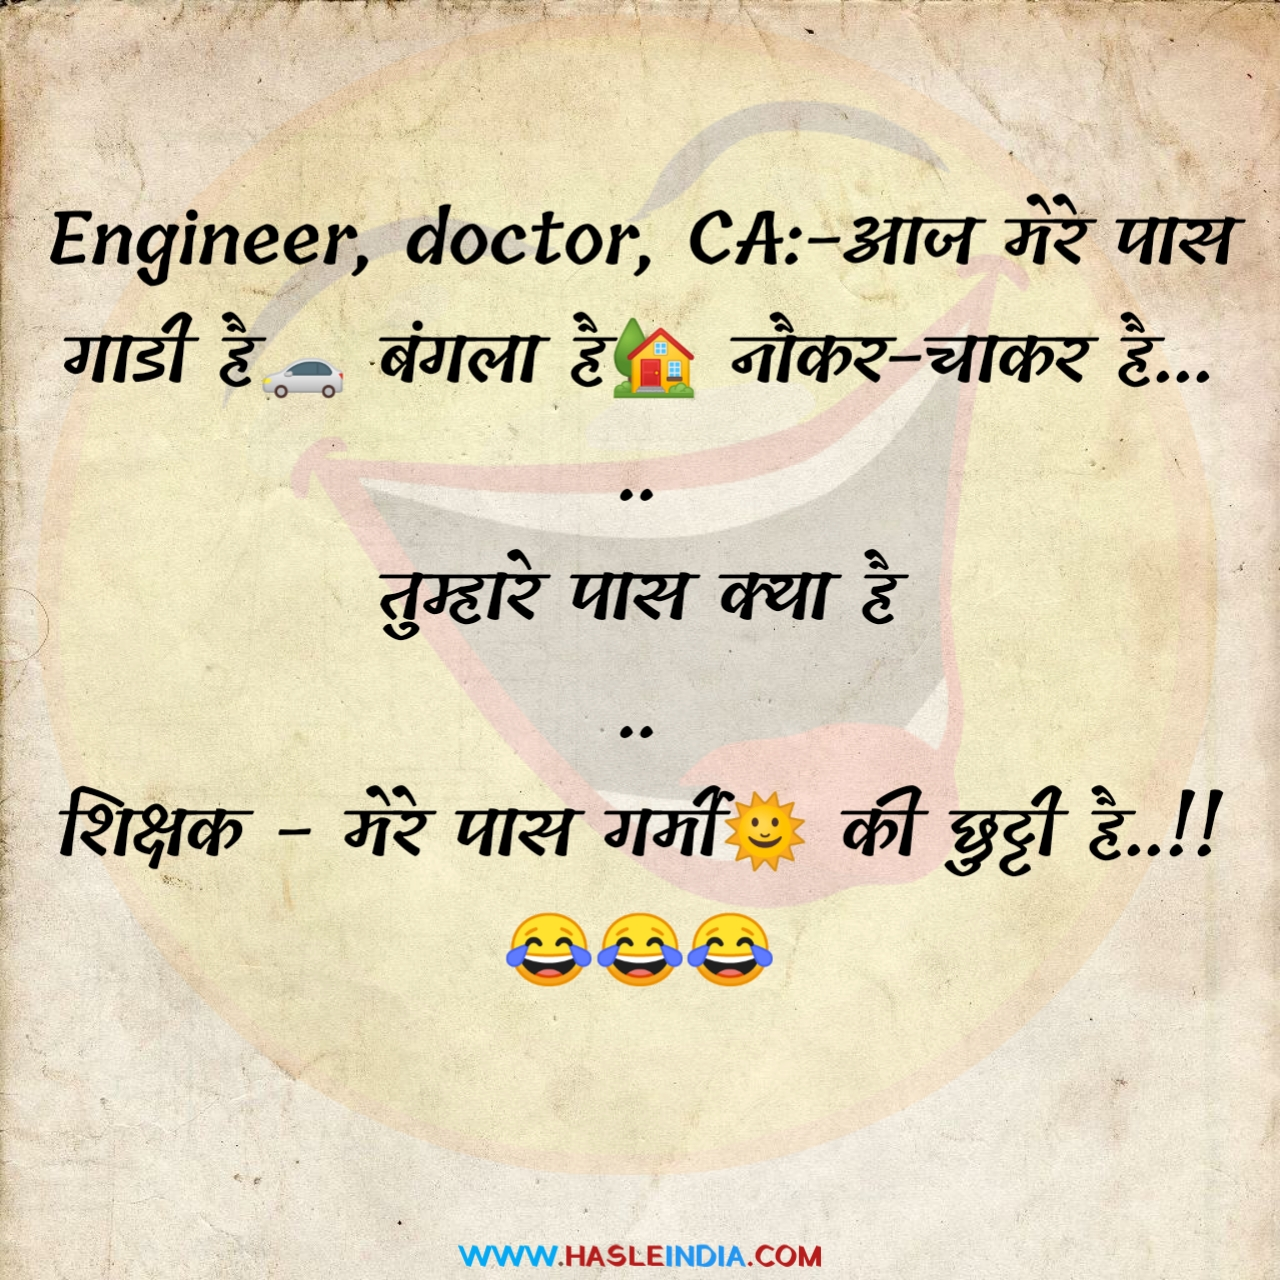 funny hindi jokes,Hasle india,hindi chutkule,hindi joke sms,Hindi jokes,hindi jokes images,hindi jokes pic,jokes in hindi,